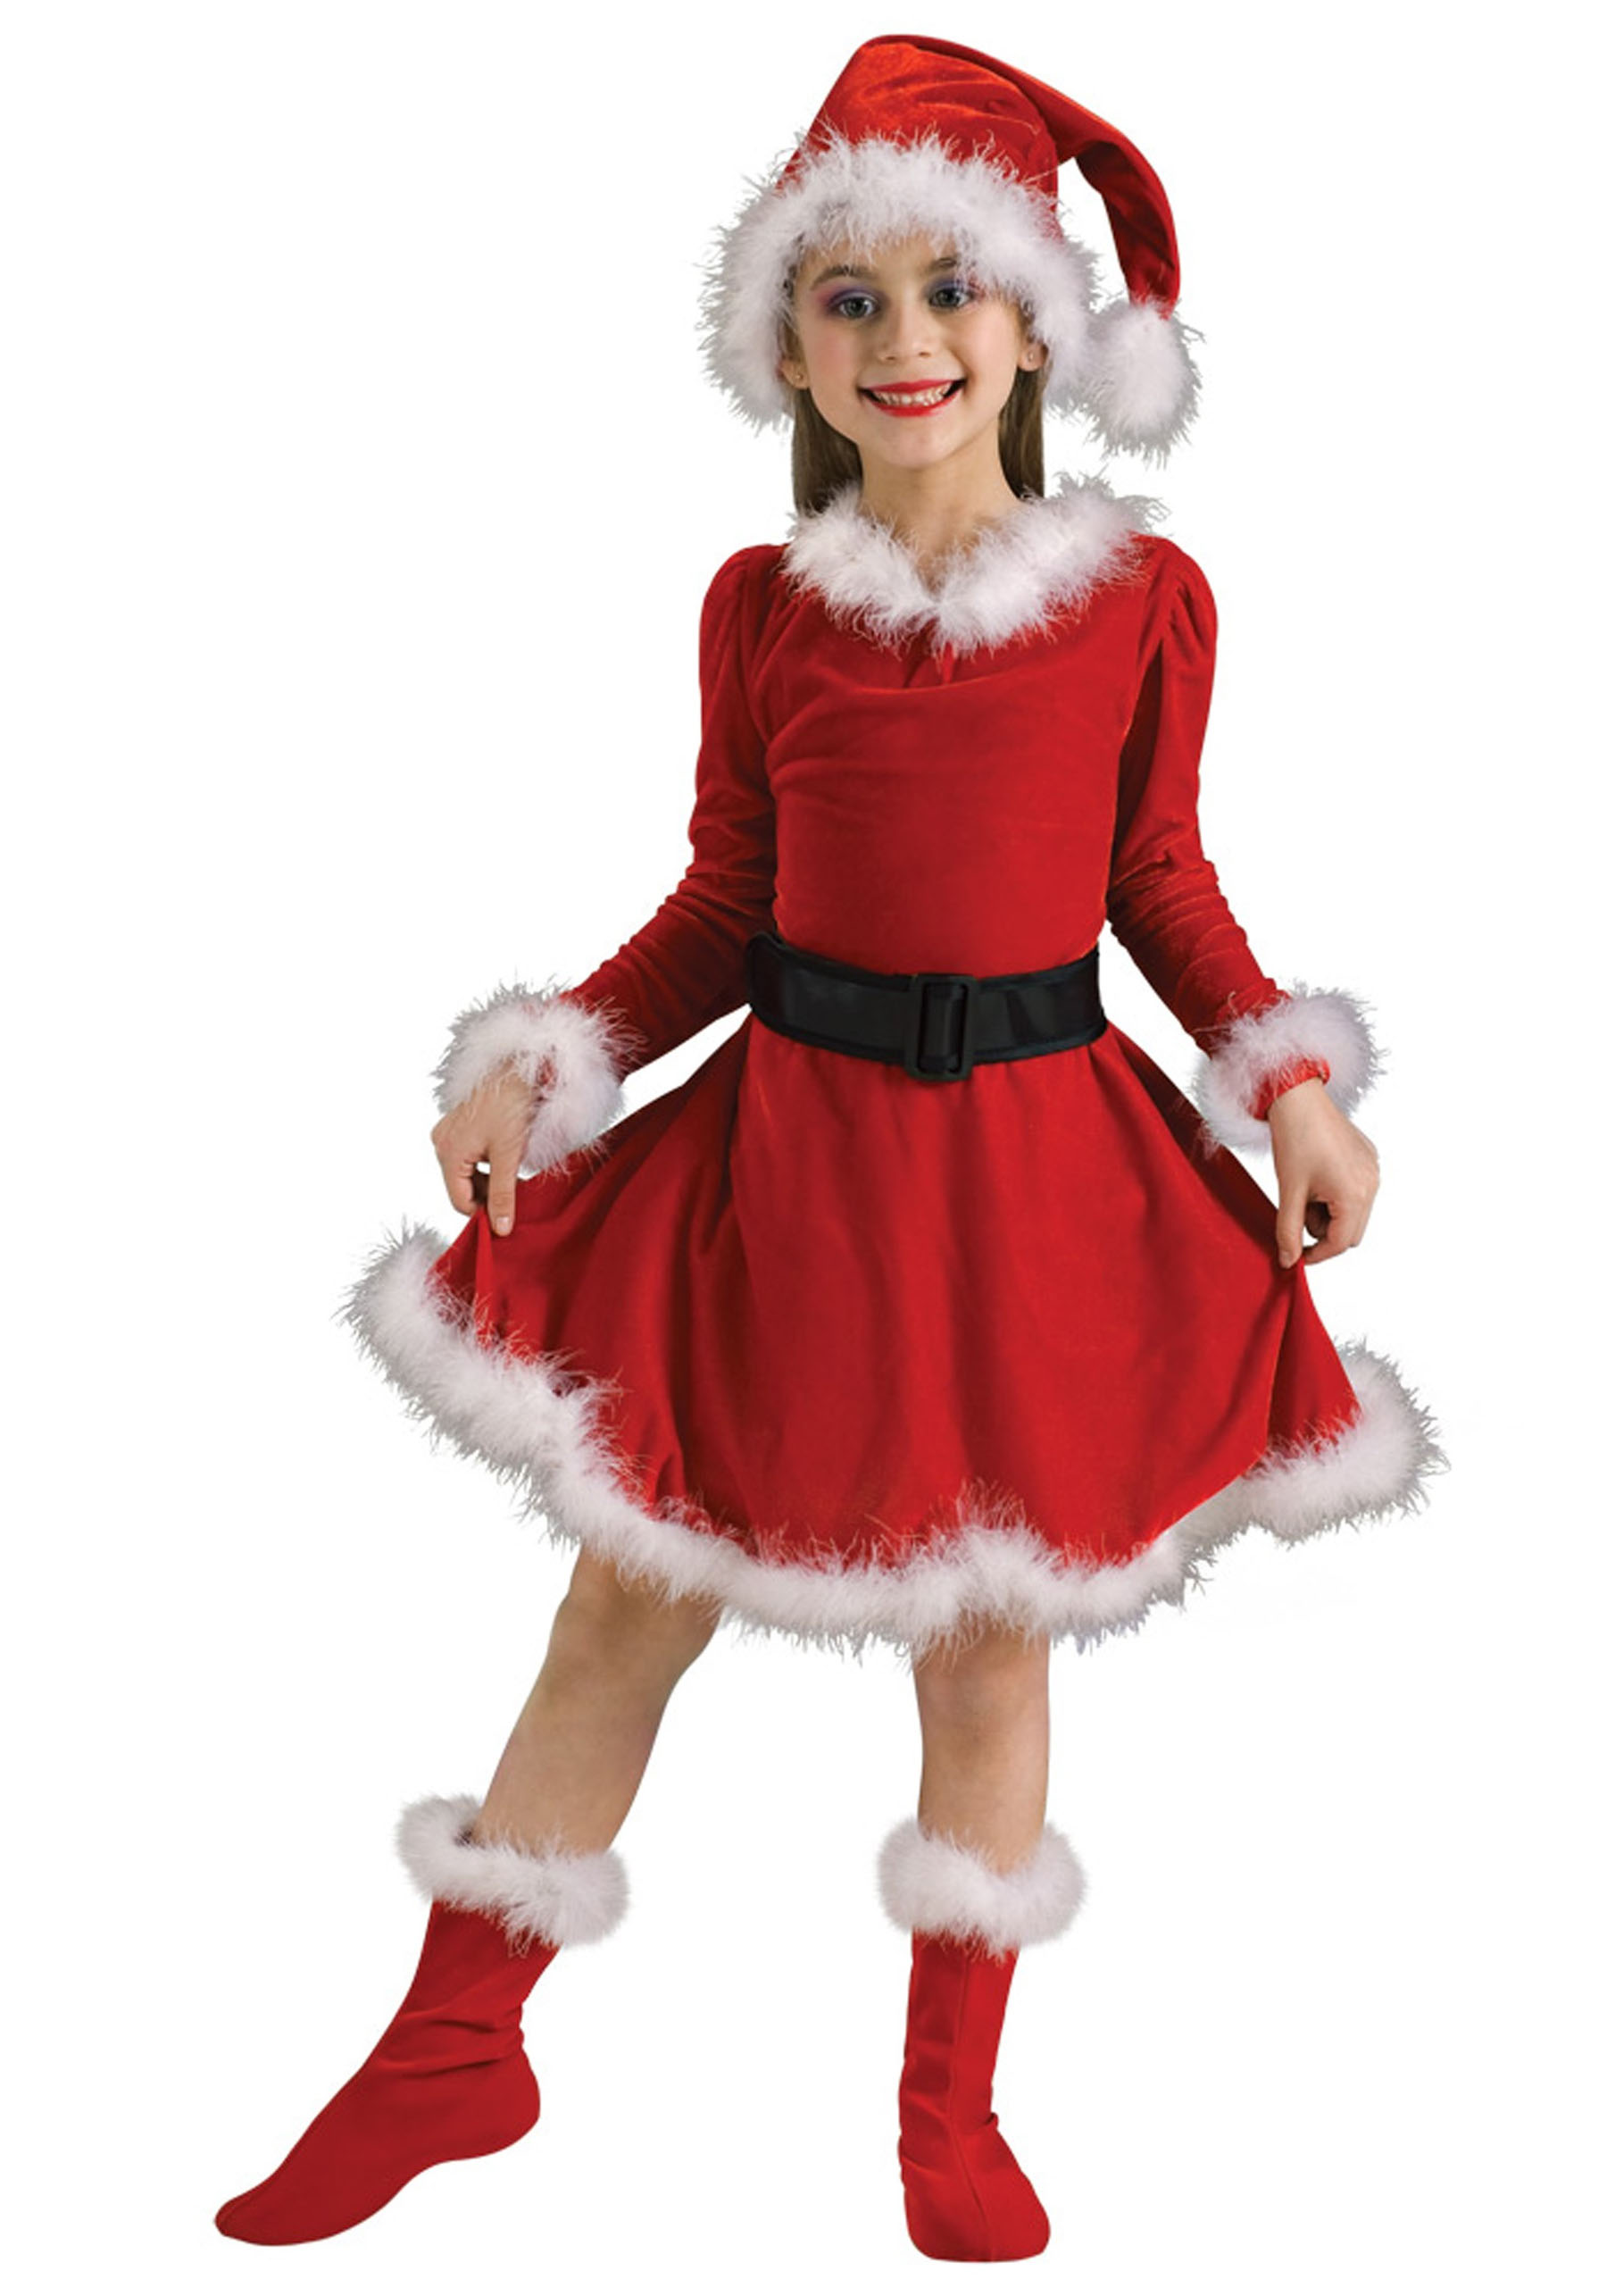 dresses baby dresses for Christmas season 48715